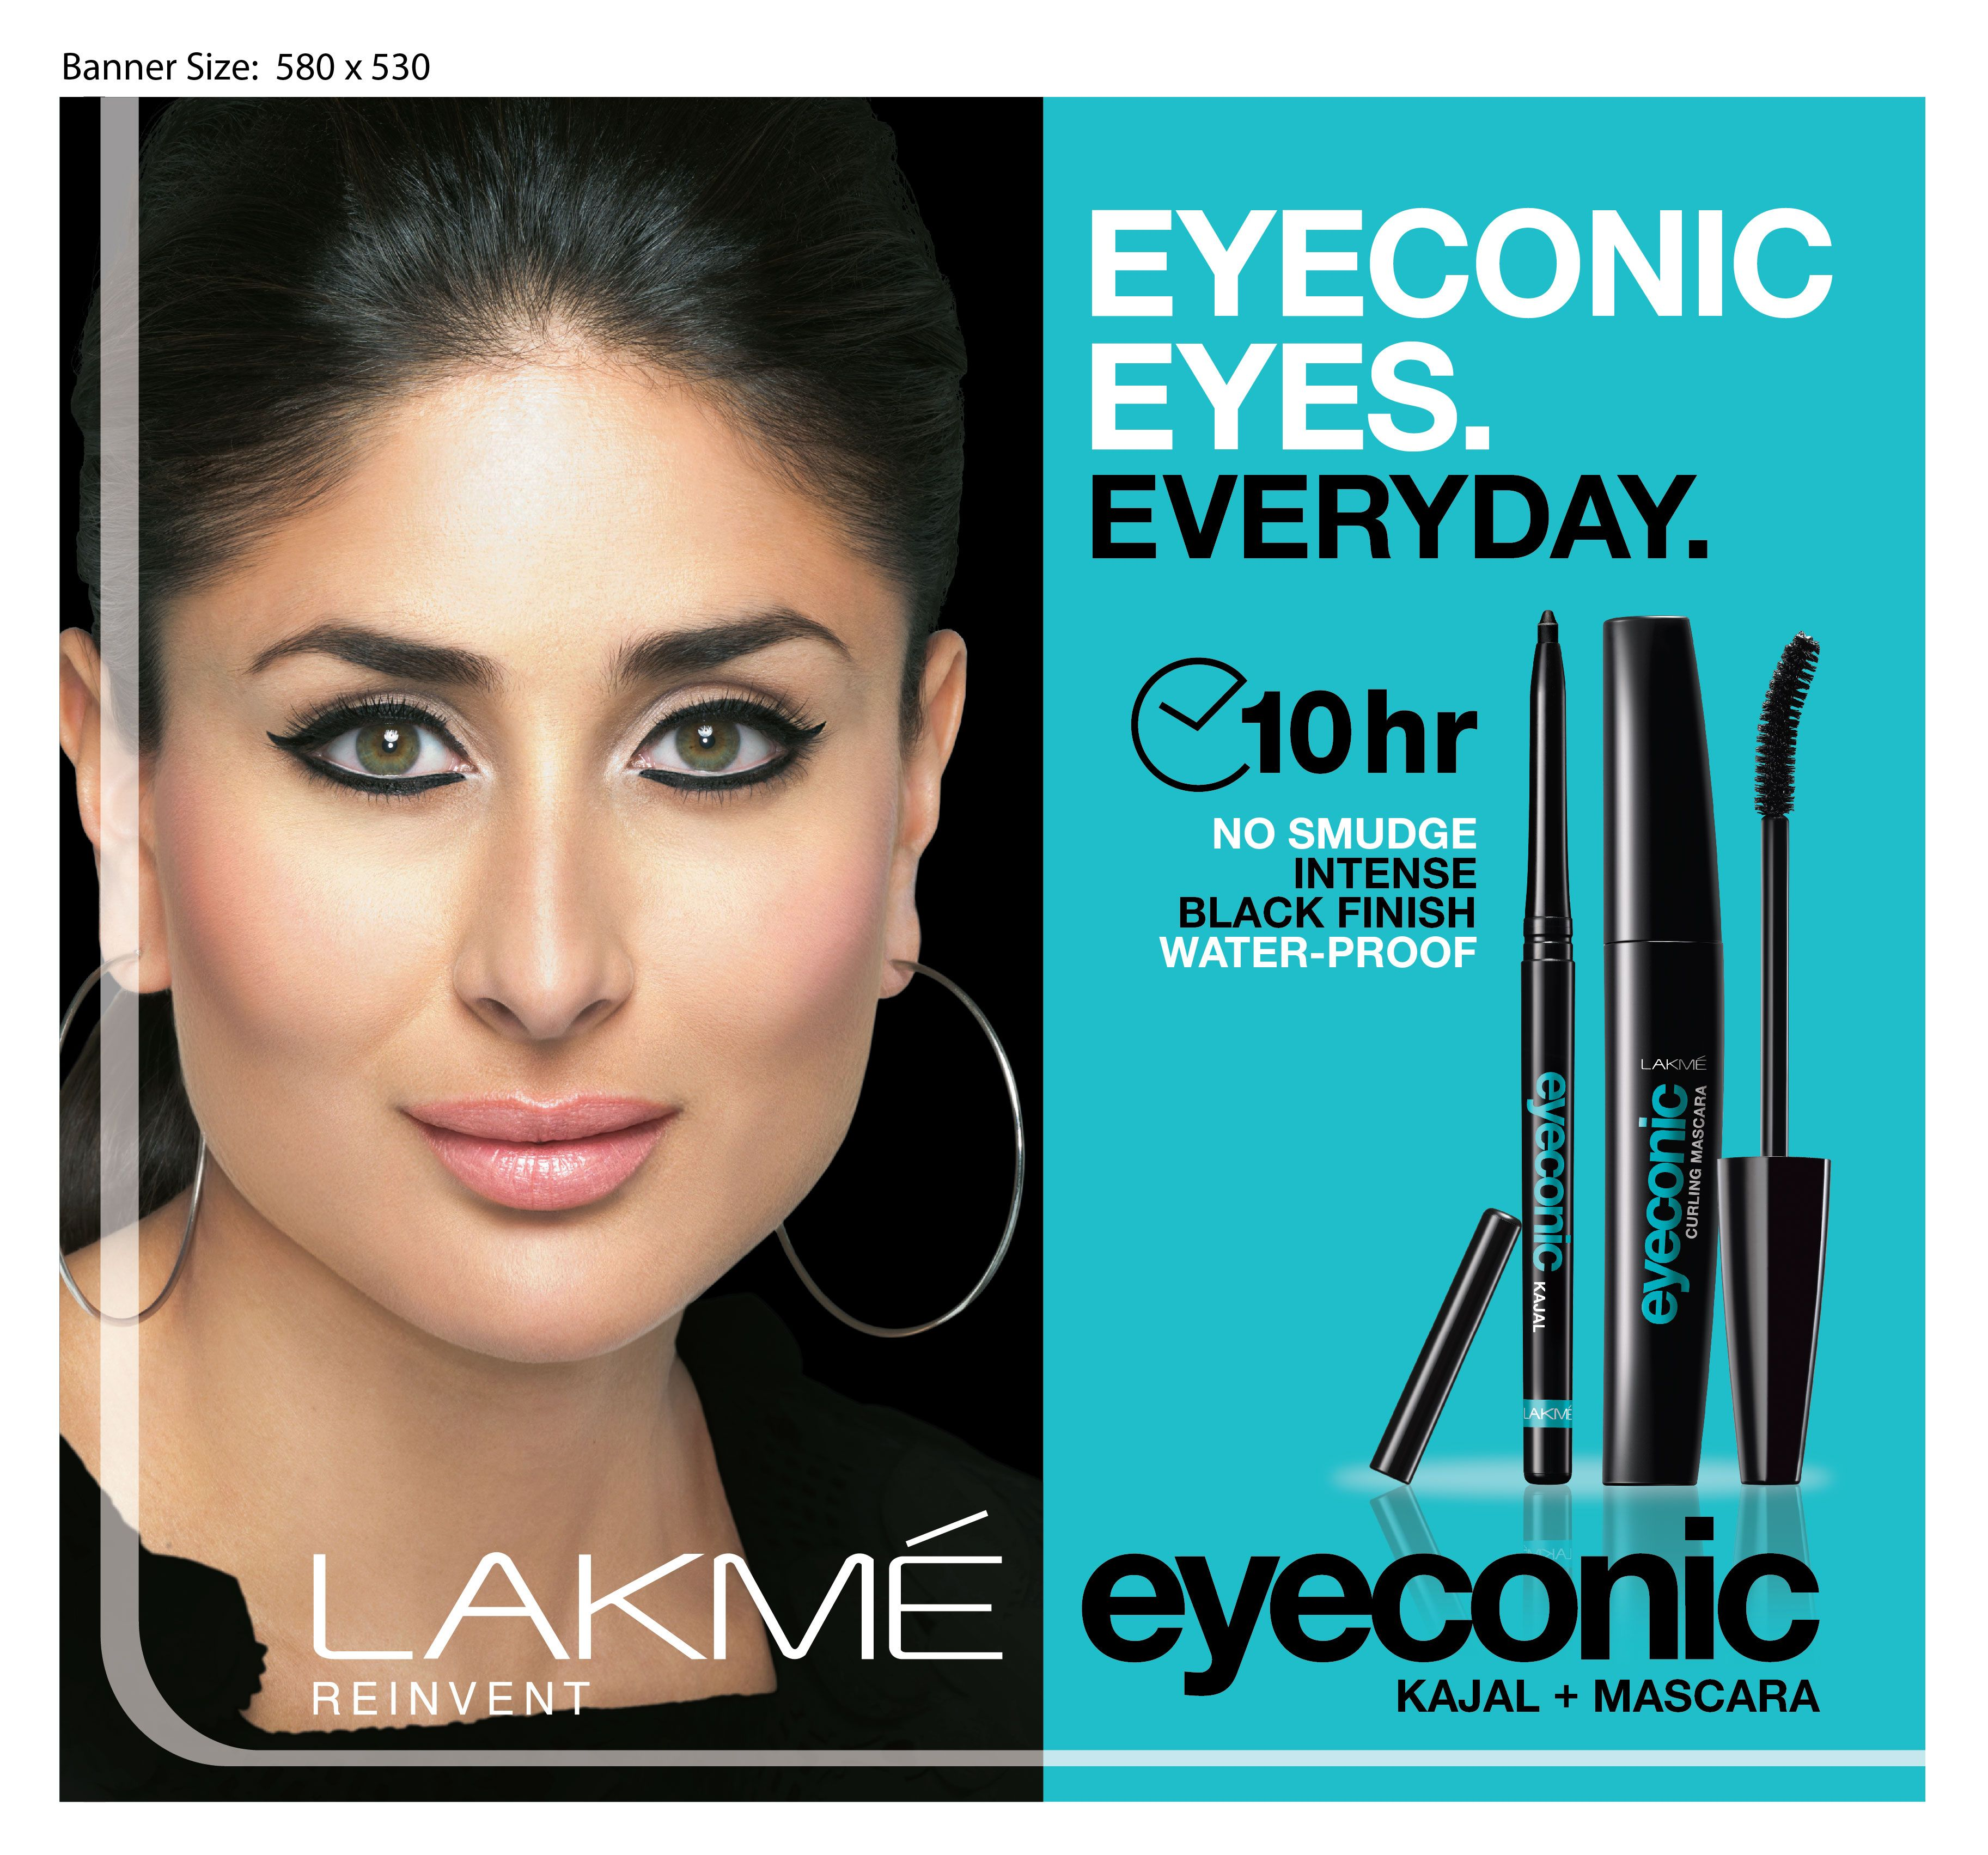 #Lakme has been known for its flawless makeup products ...